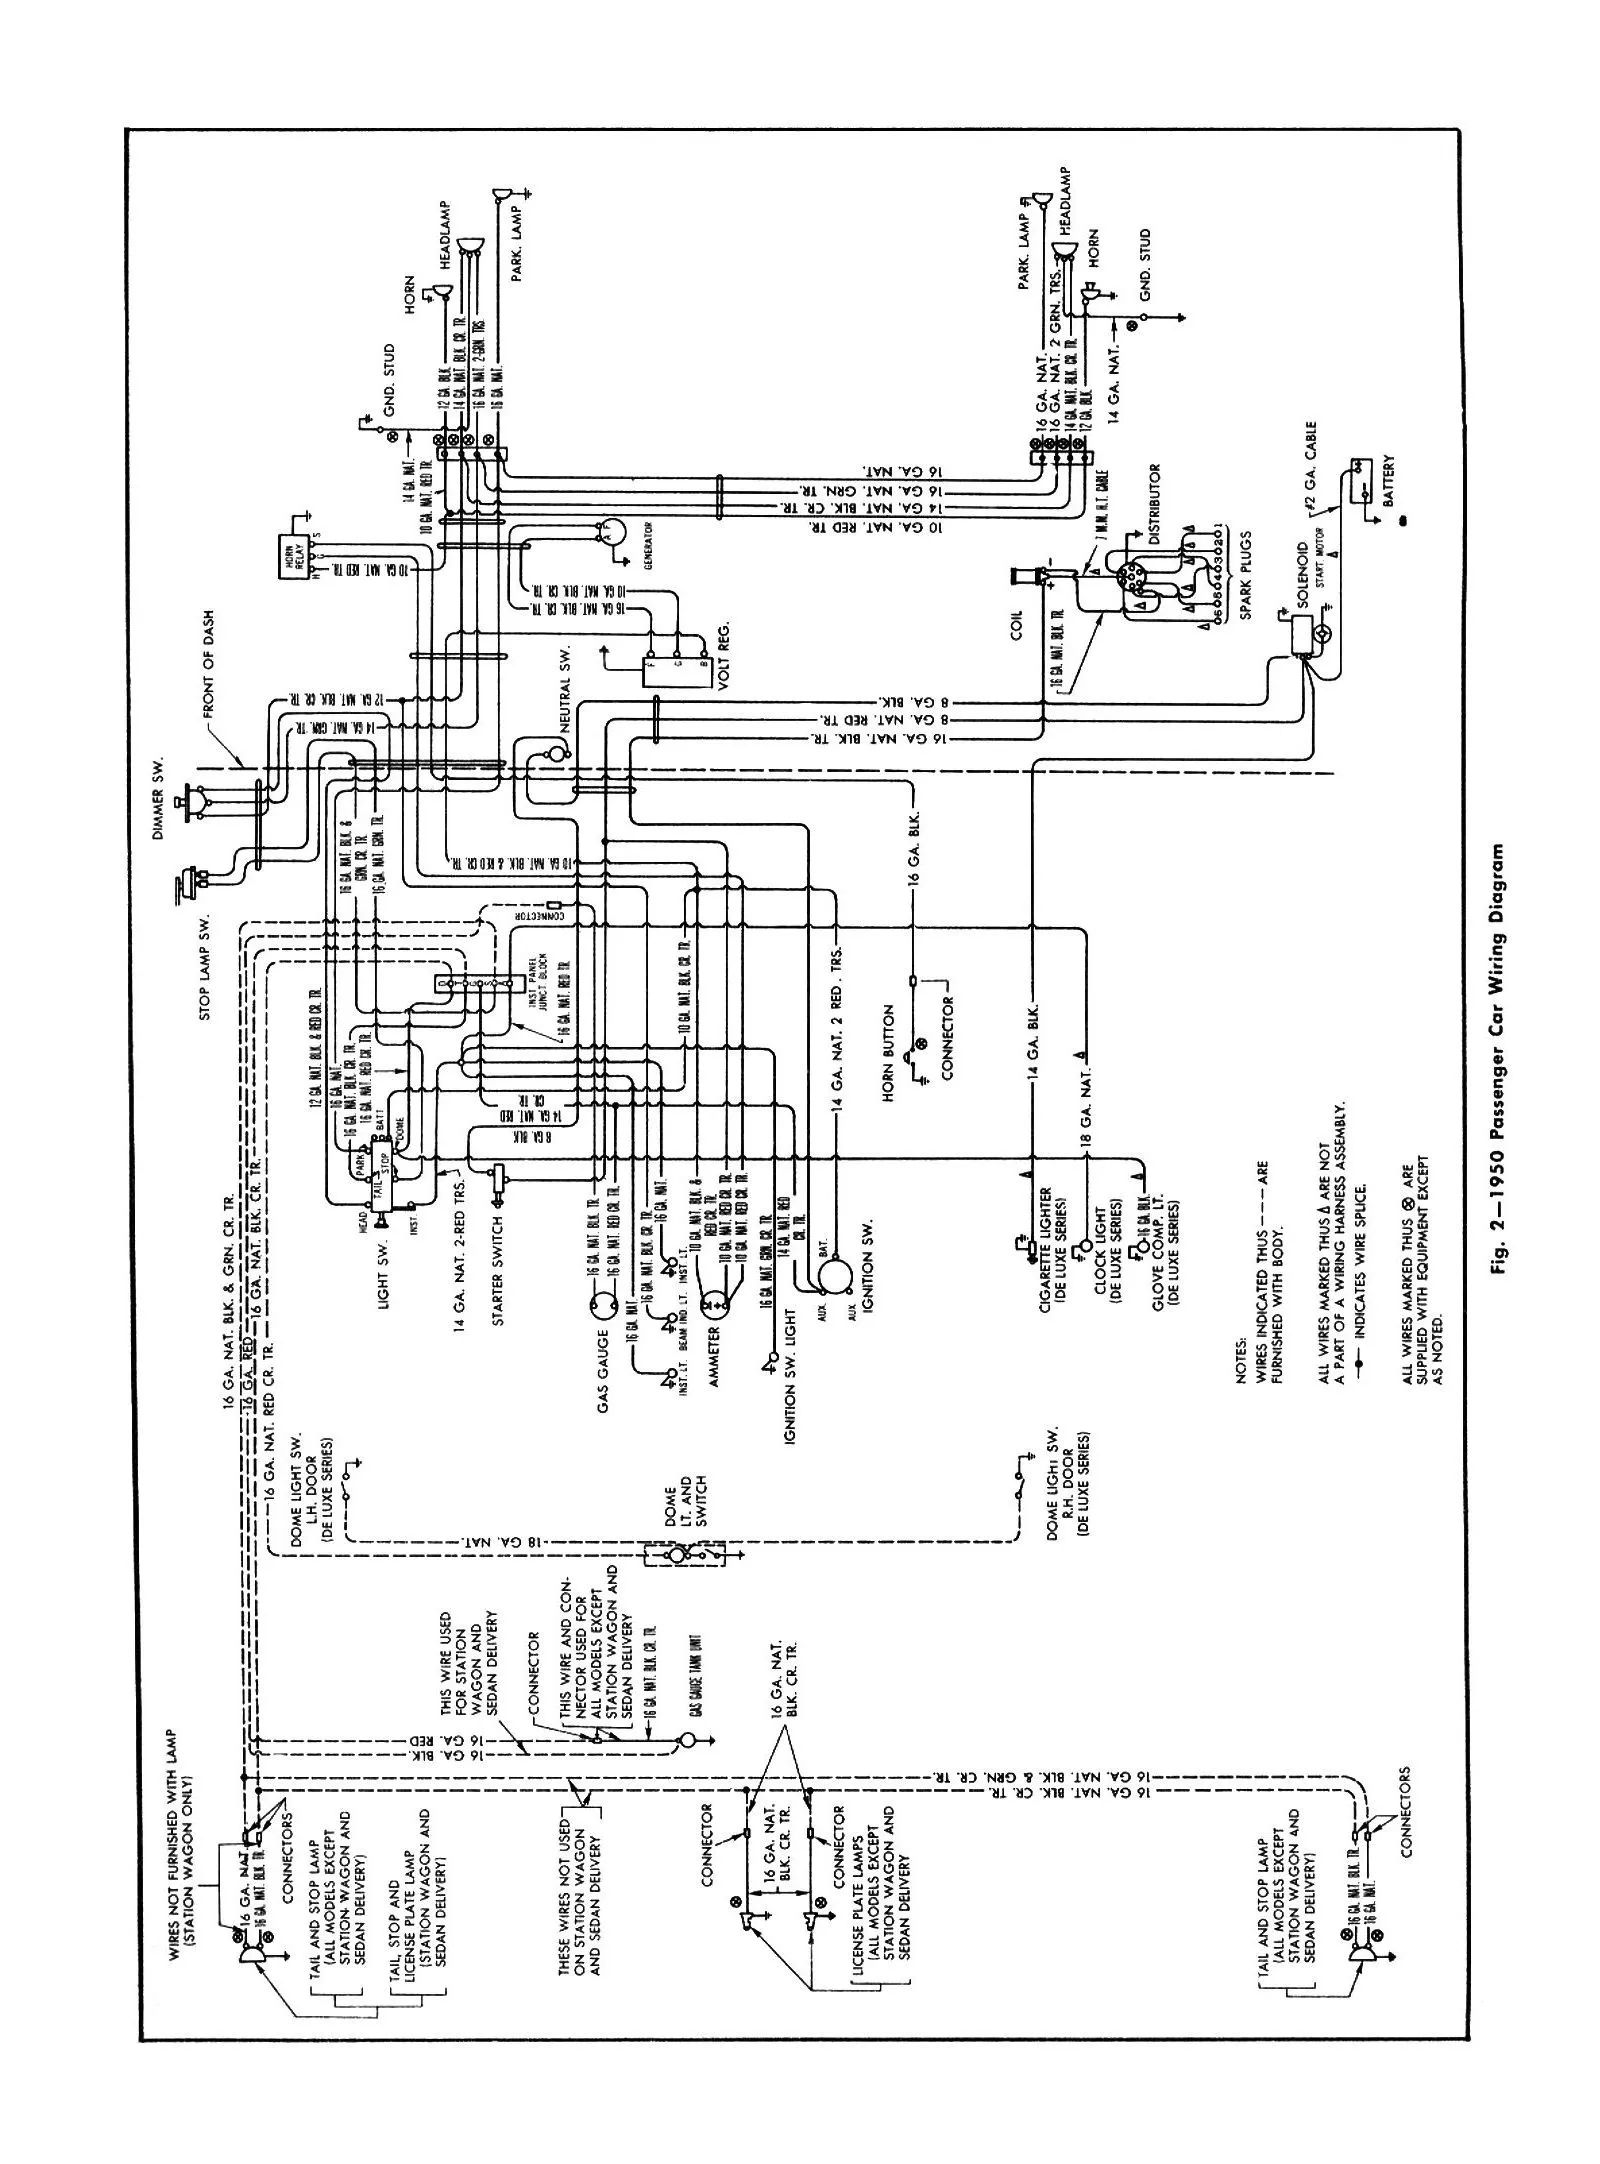 chevy engine diagrams get image about wiring diagram